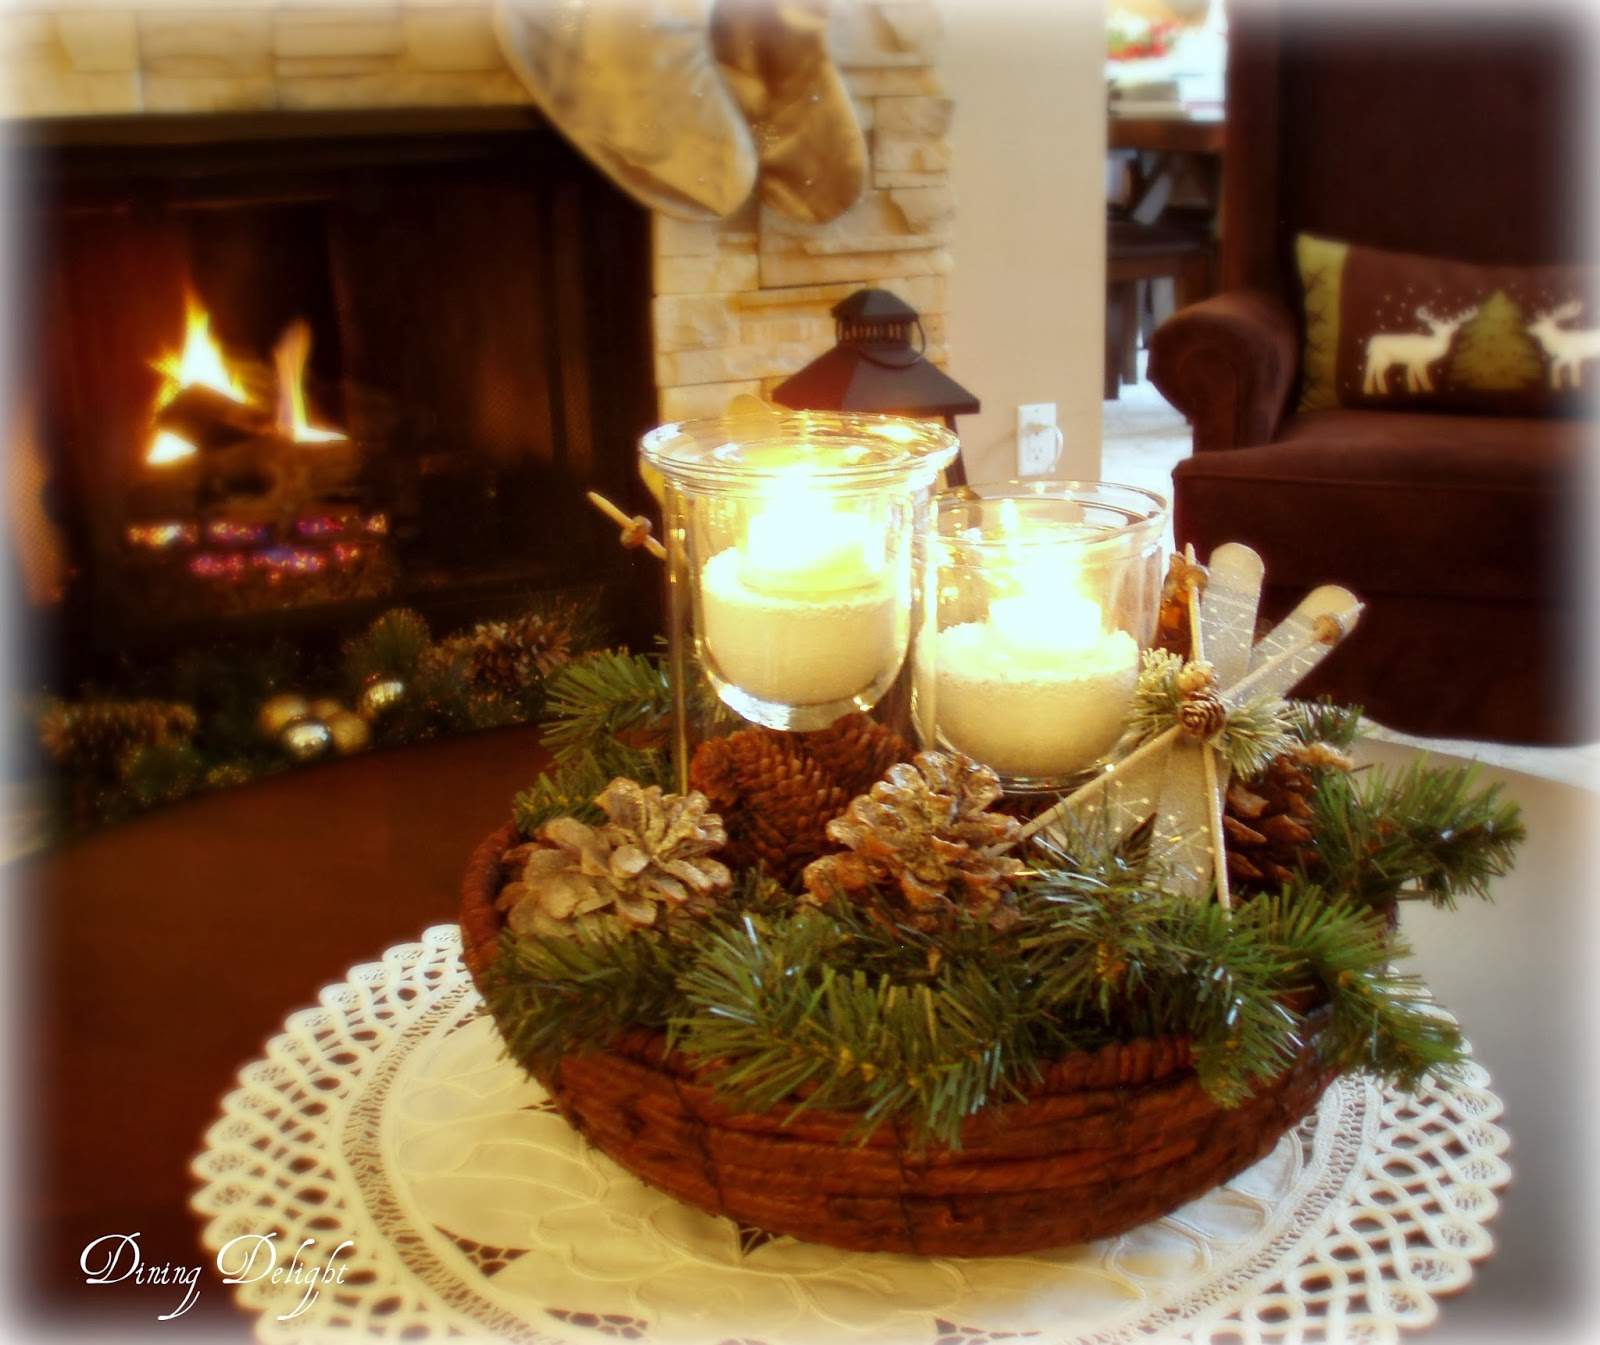 Dining delight christmas home tour 2013 Coffee table centerpiece